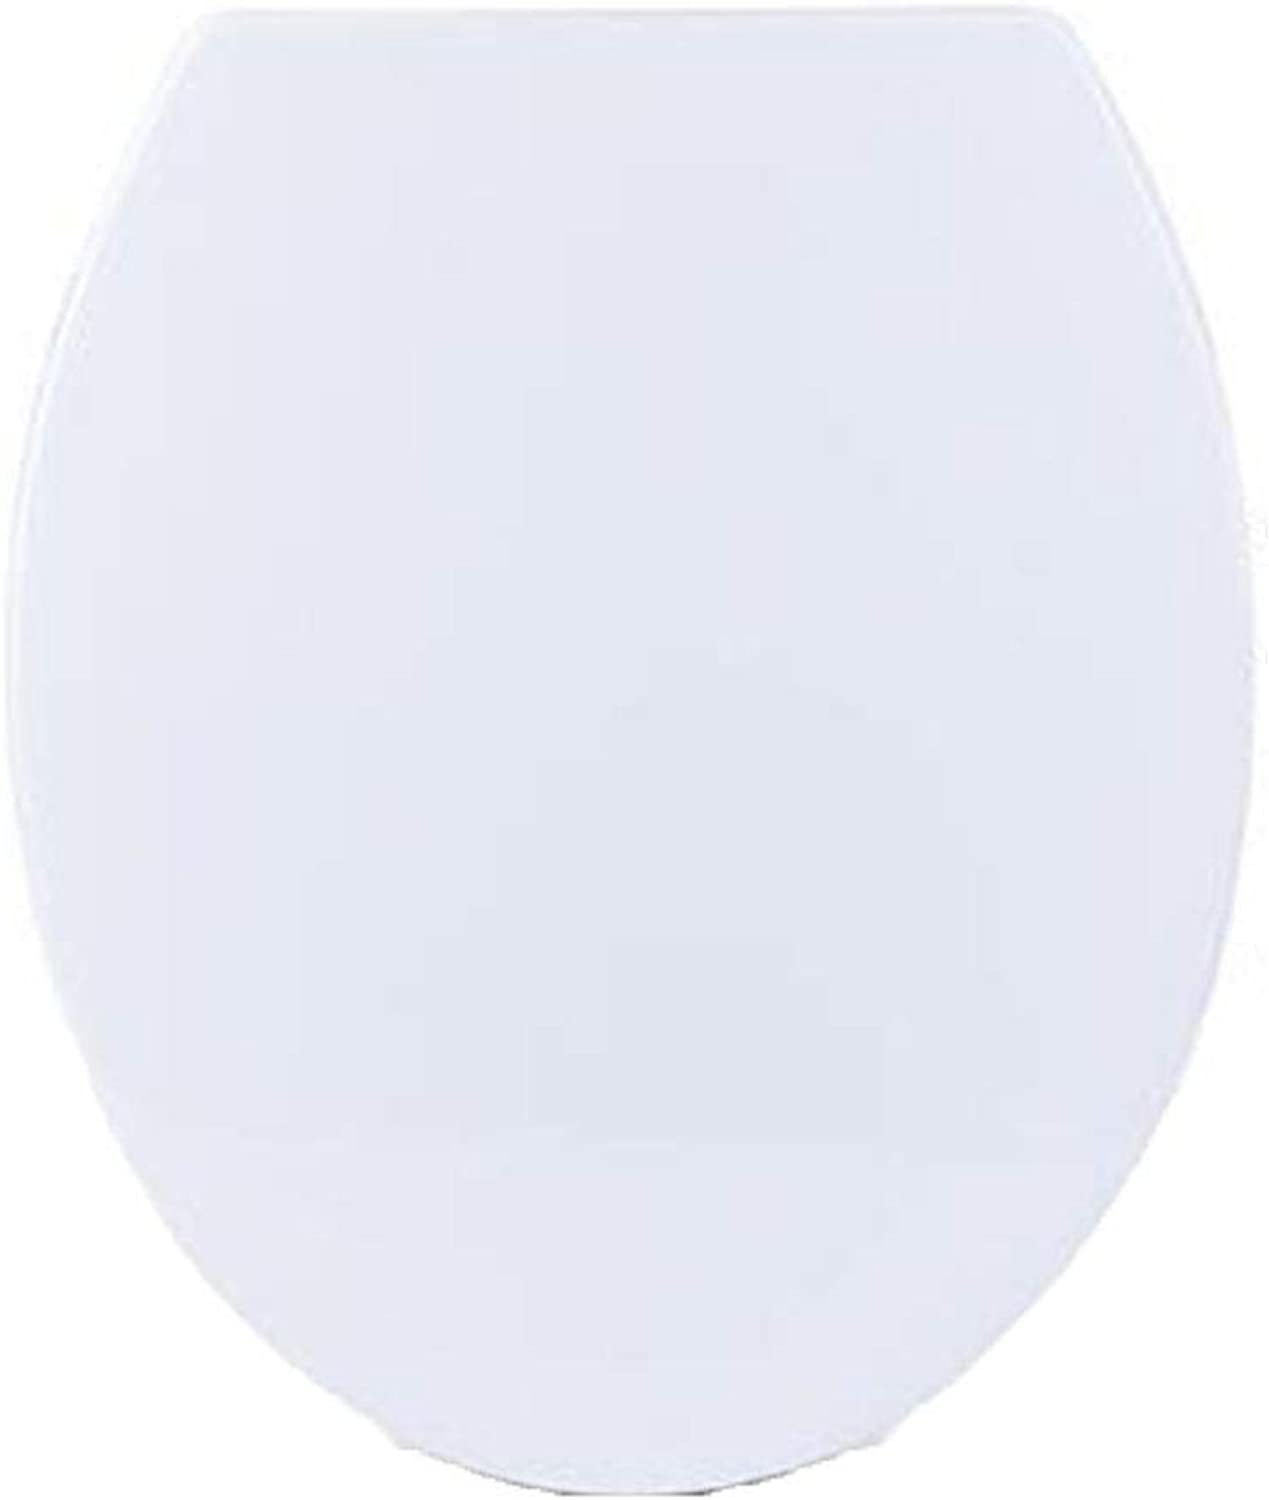 O-type, toilet seat with slow soft closure and quick release hinge, white